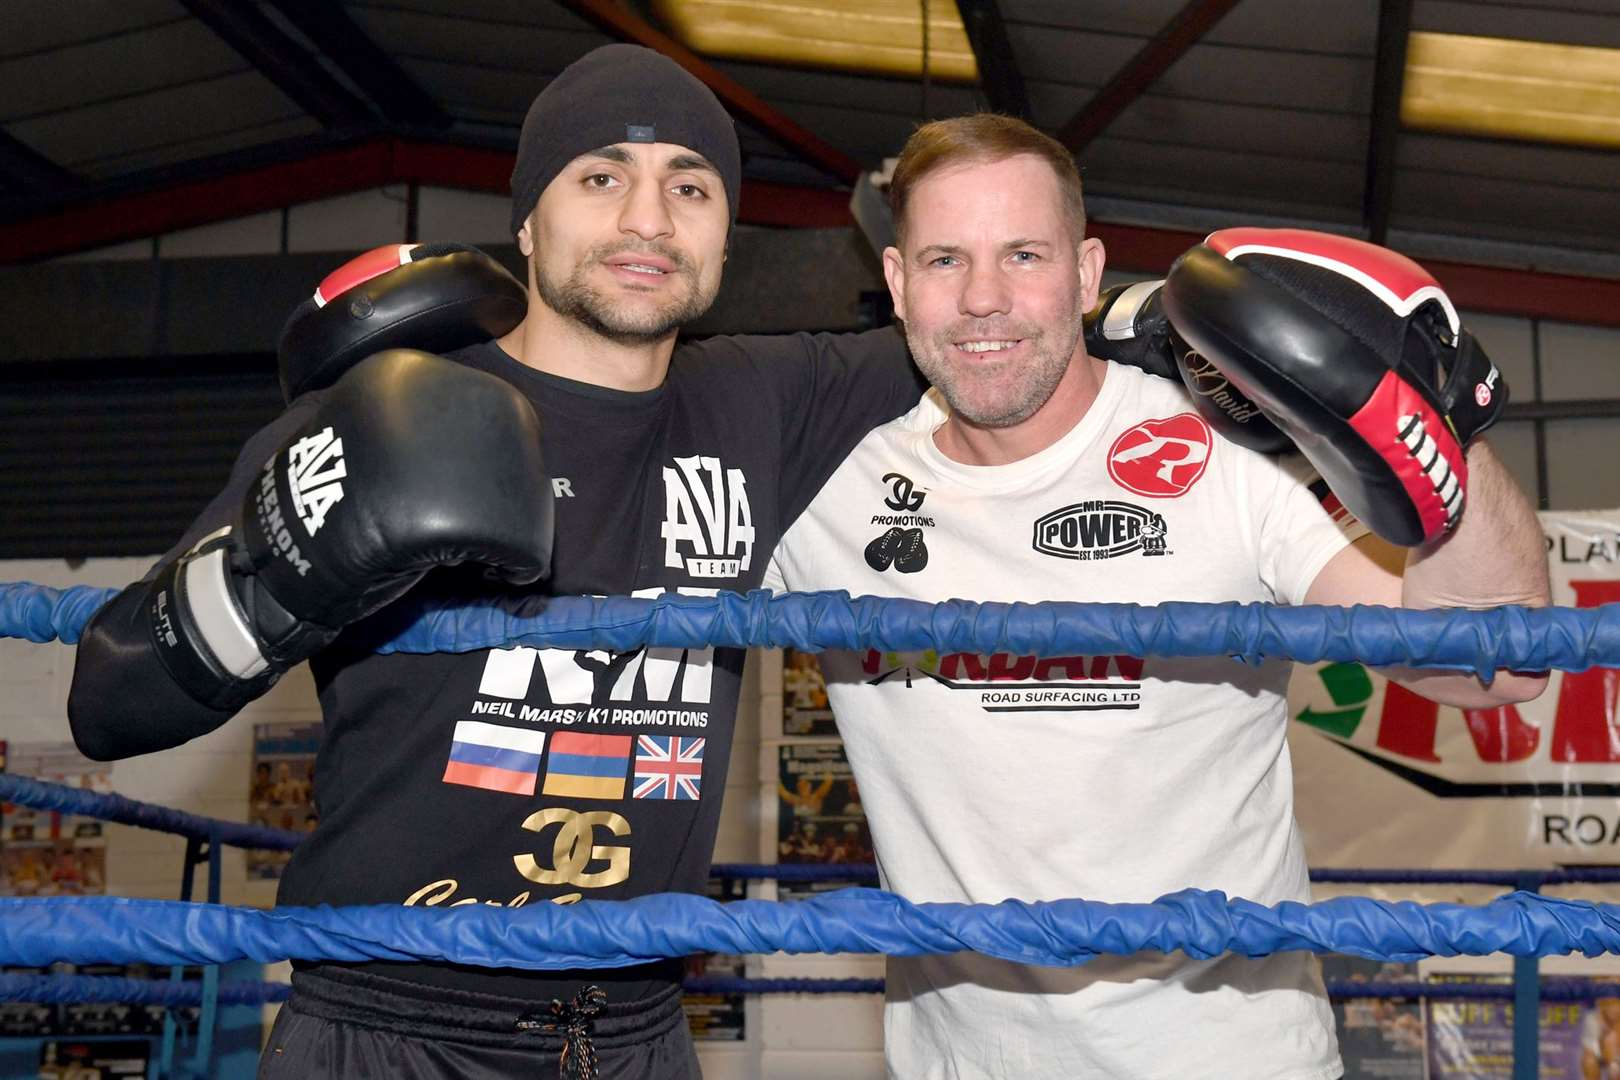 Carl Greaves with boxer David Avanesyan, who is defending his European belt.